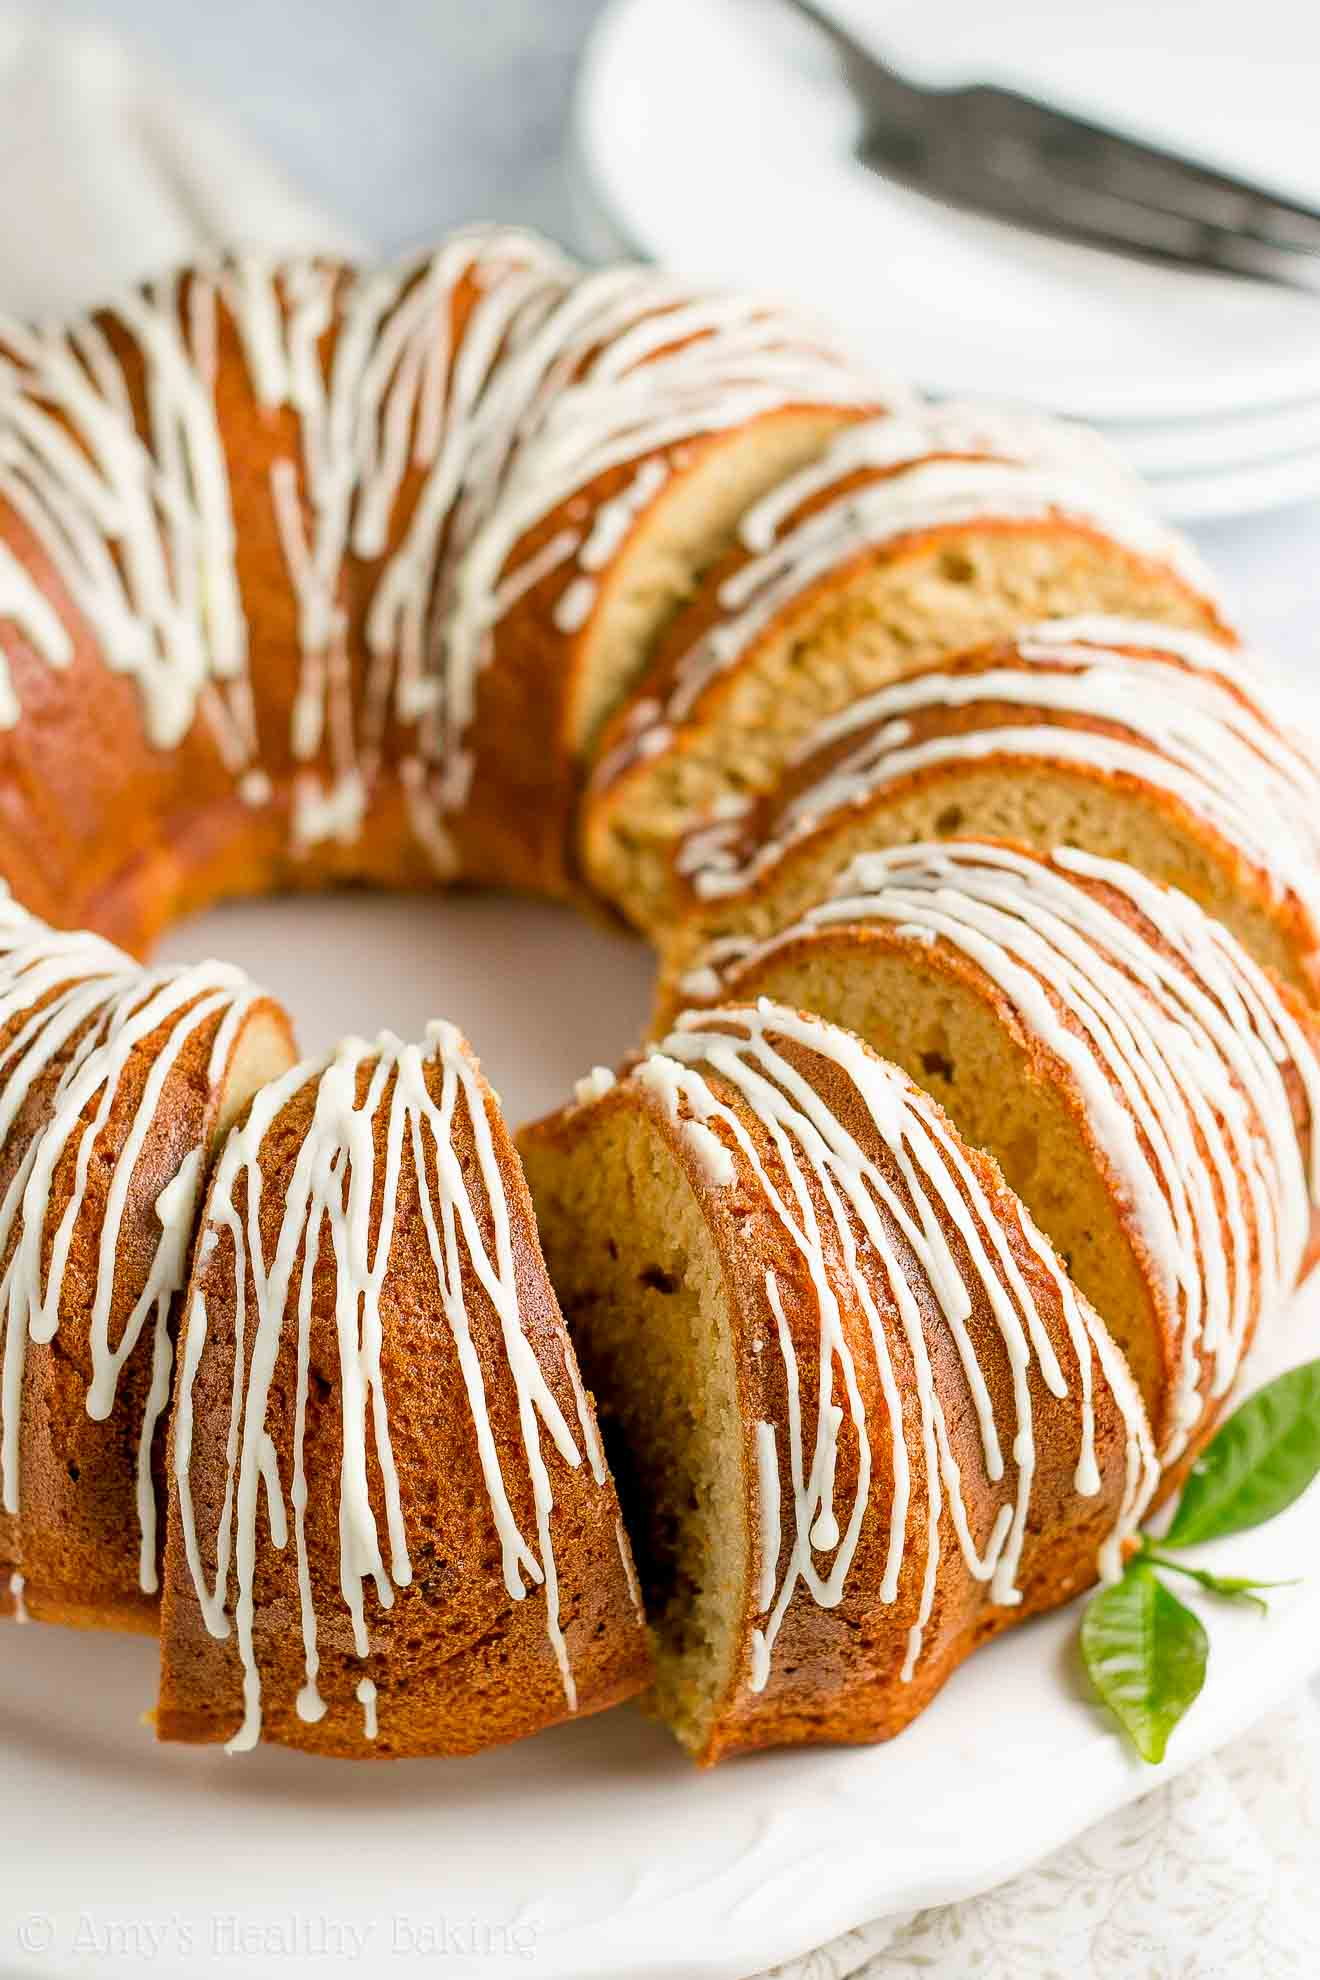 Gluten-Free Healthy Orange Bundt Cake Recipe, made from scratch